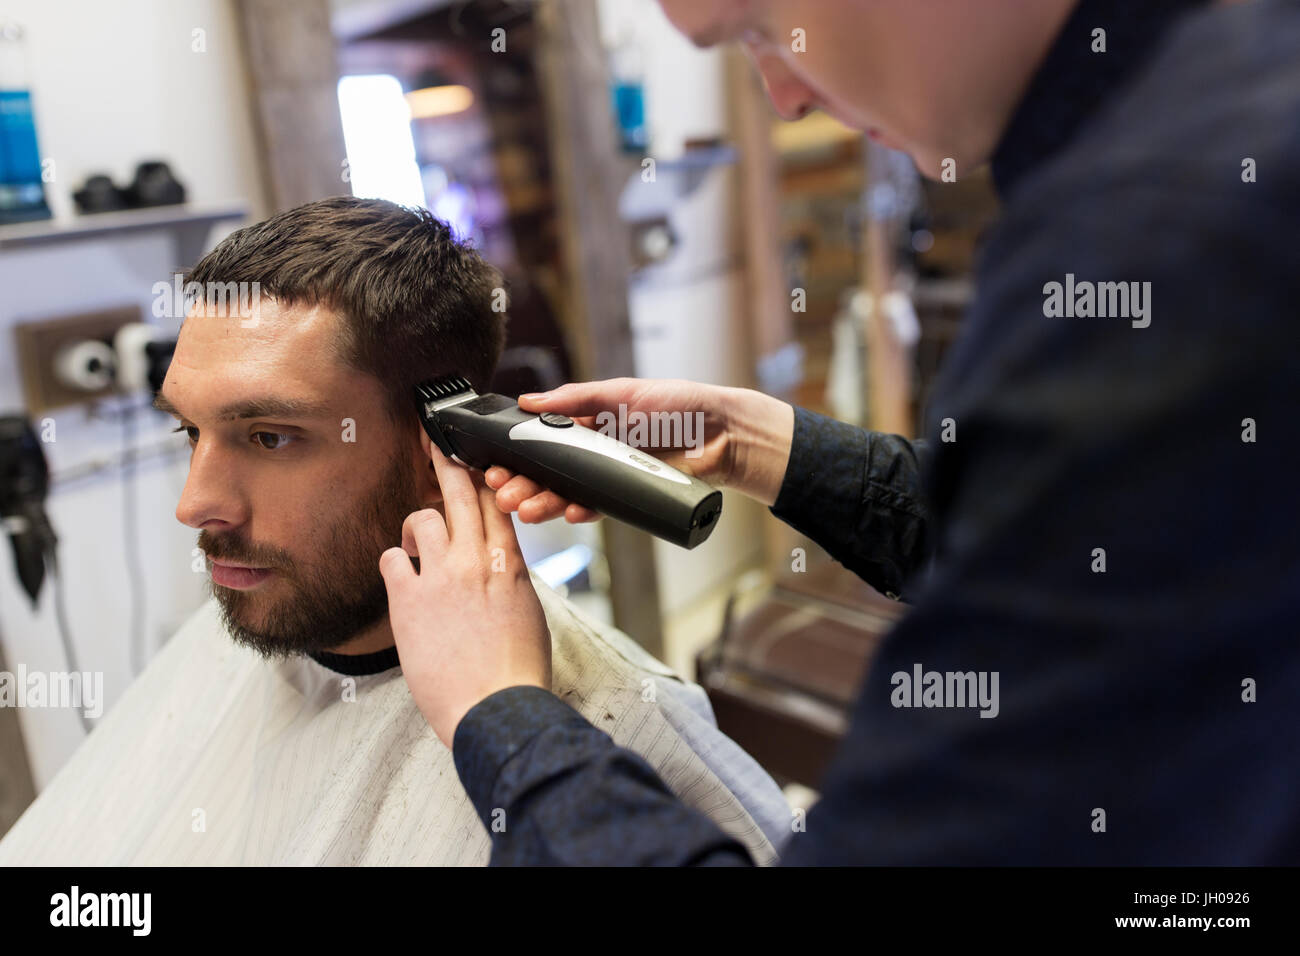 man and barber with trimmer cutting hair at salon - Stock Image